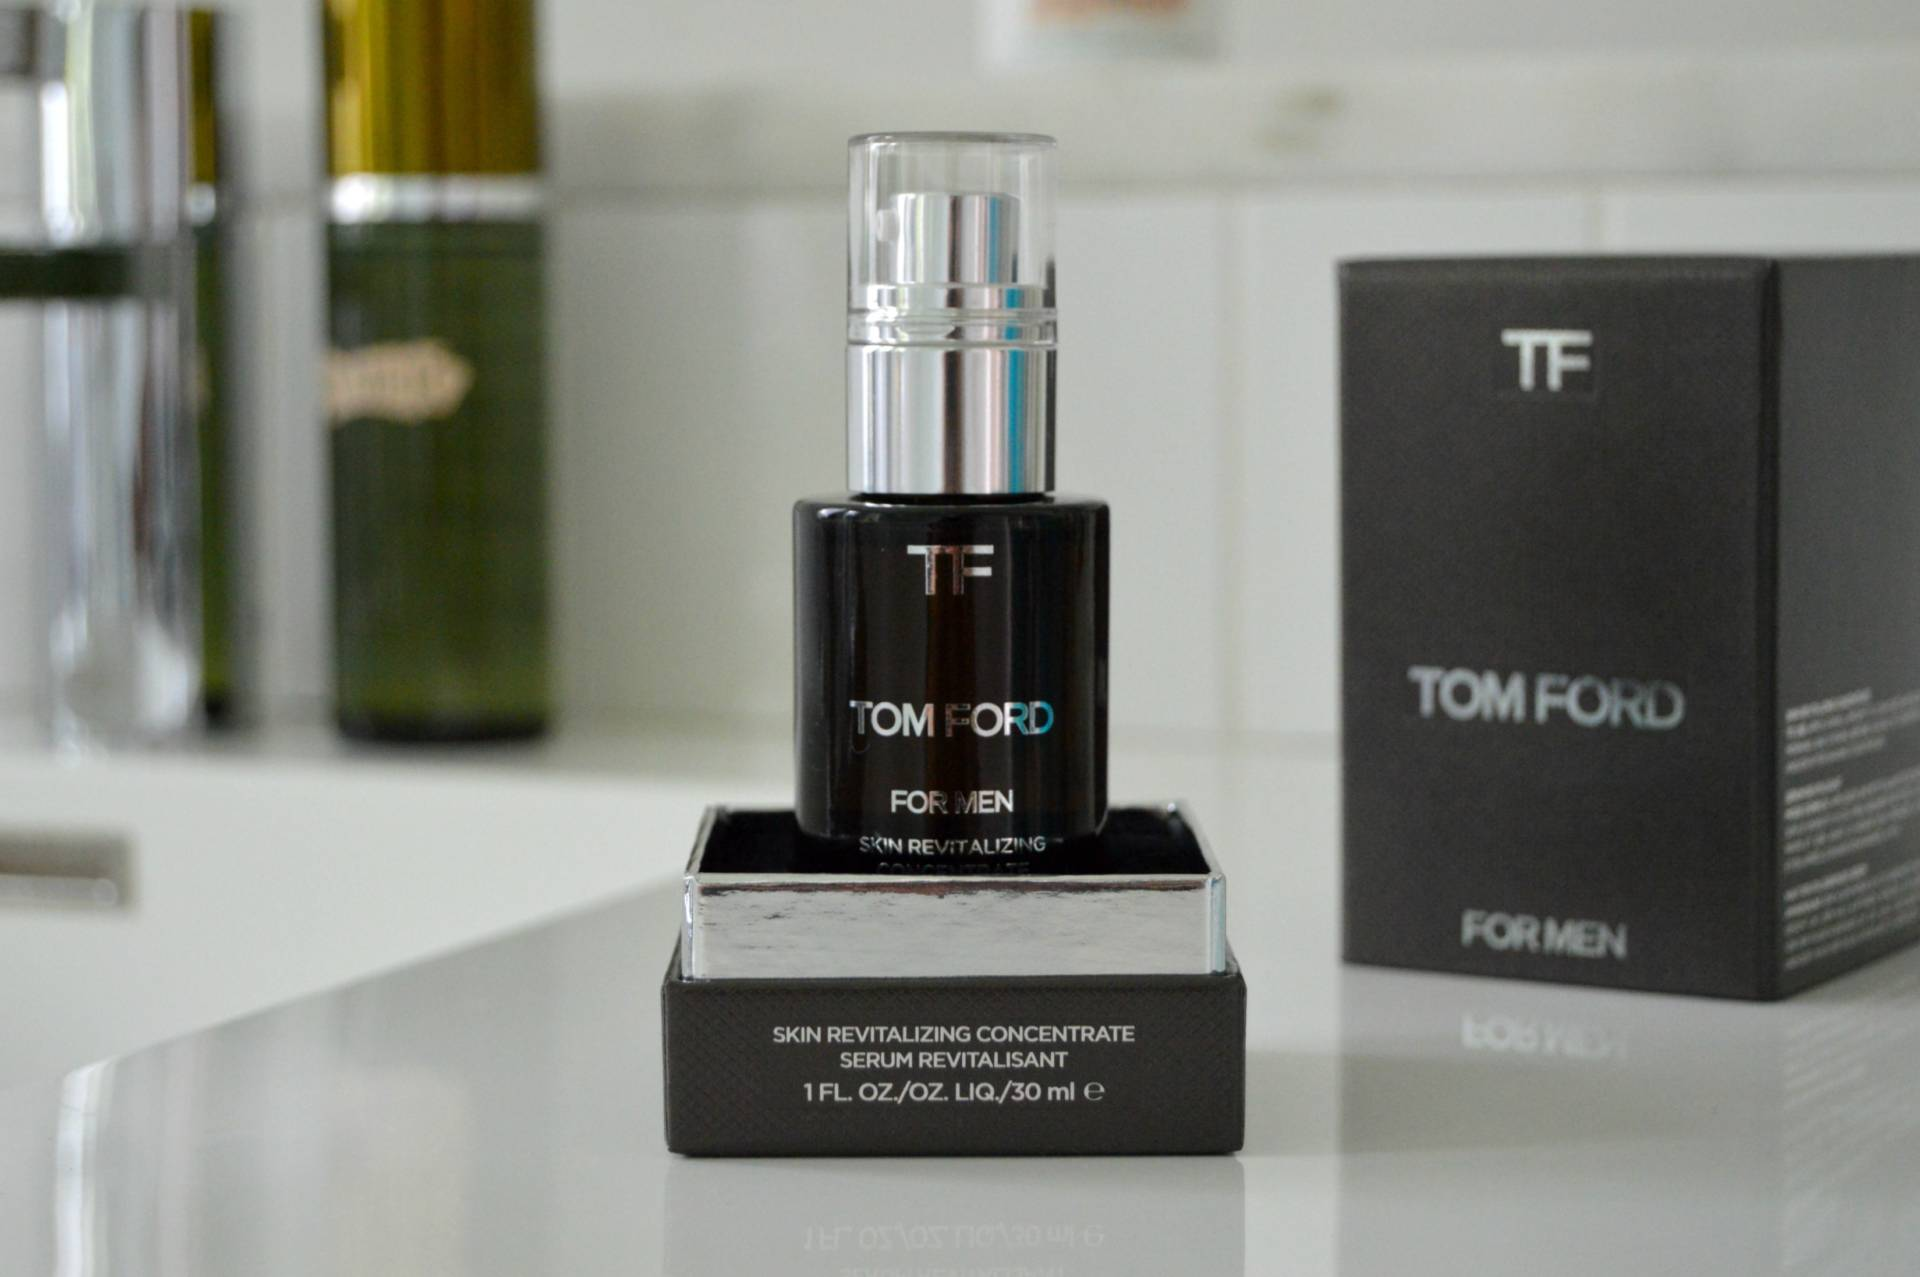 tom ford serum oil for men skincare review inhautepursuit neiman marcus national mens grooming day